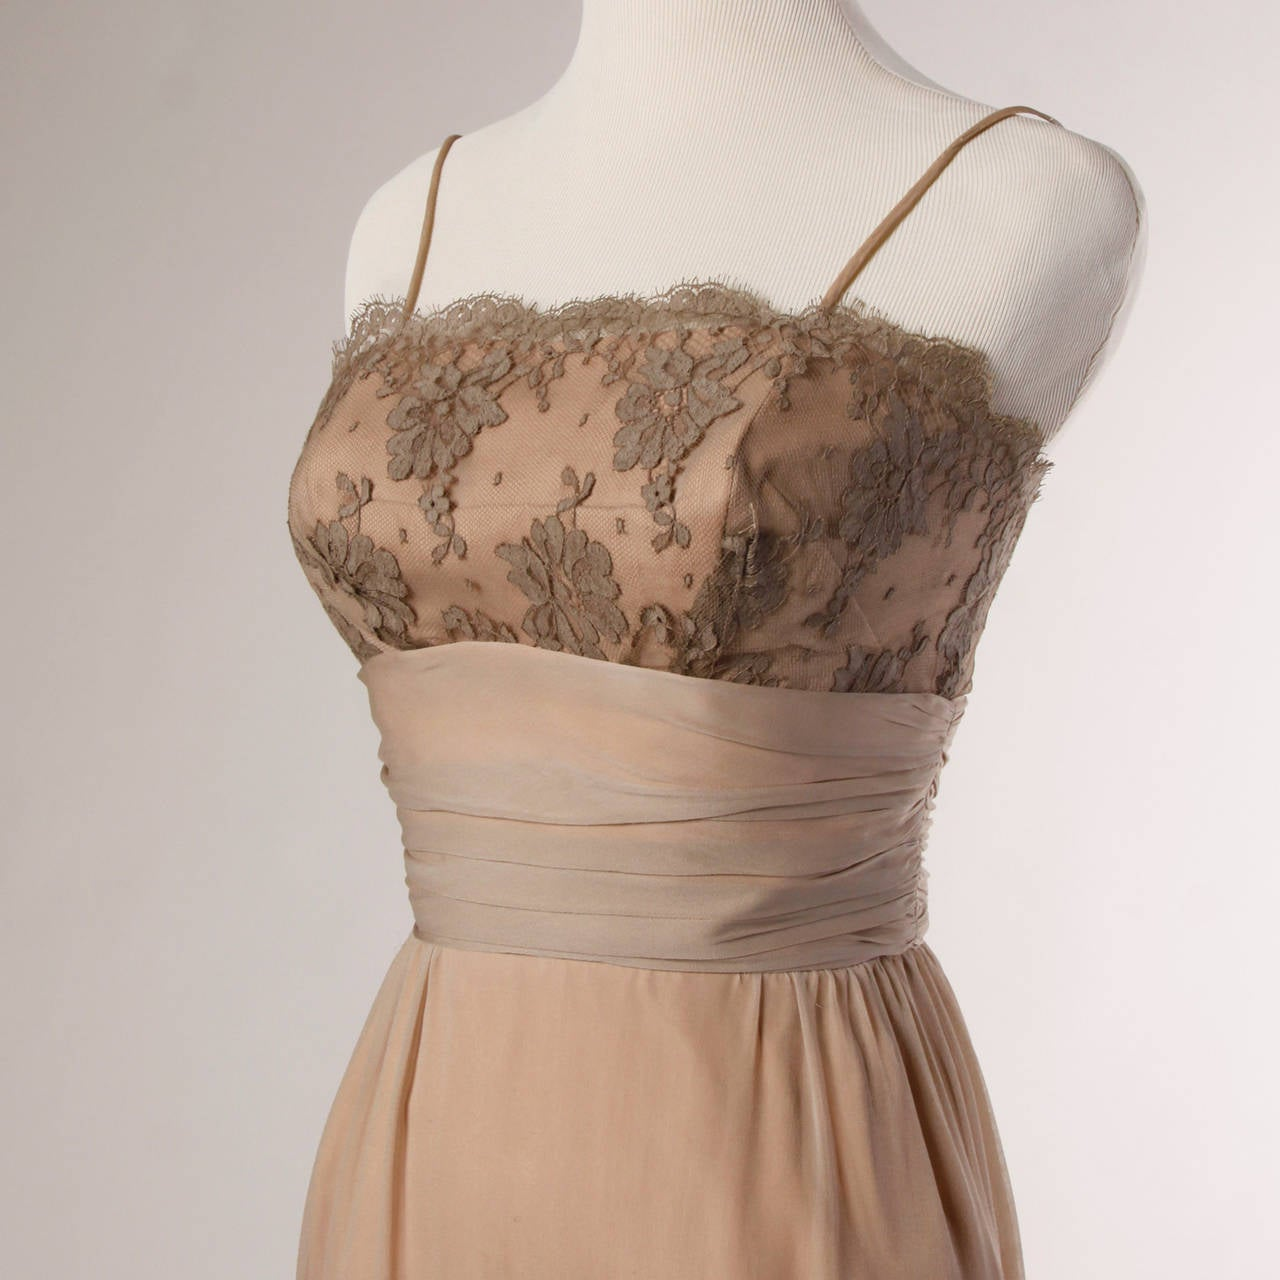 Elegant vintage cocktail dress by California designer Edith Flagg. Nude silk with chantilly lace bustline.  Details:  Fully Lined Back Metal Zip and Hook Closure Marked Size: Not Marked Color: Deep Gray Taupe/ Creamy Peach Beige Fabric: